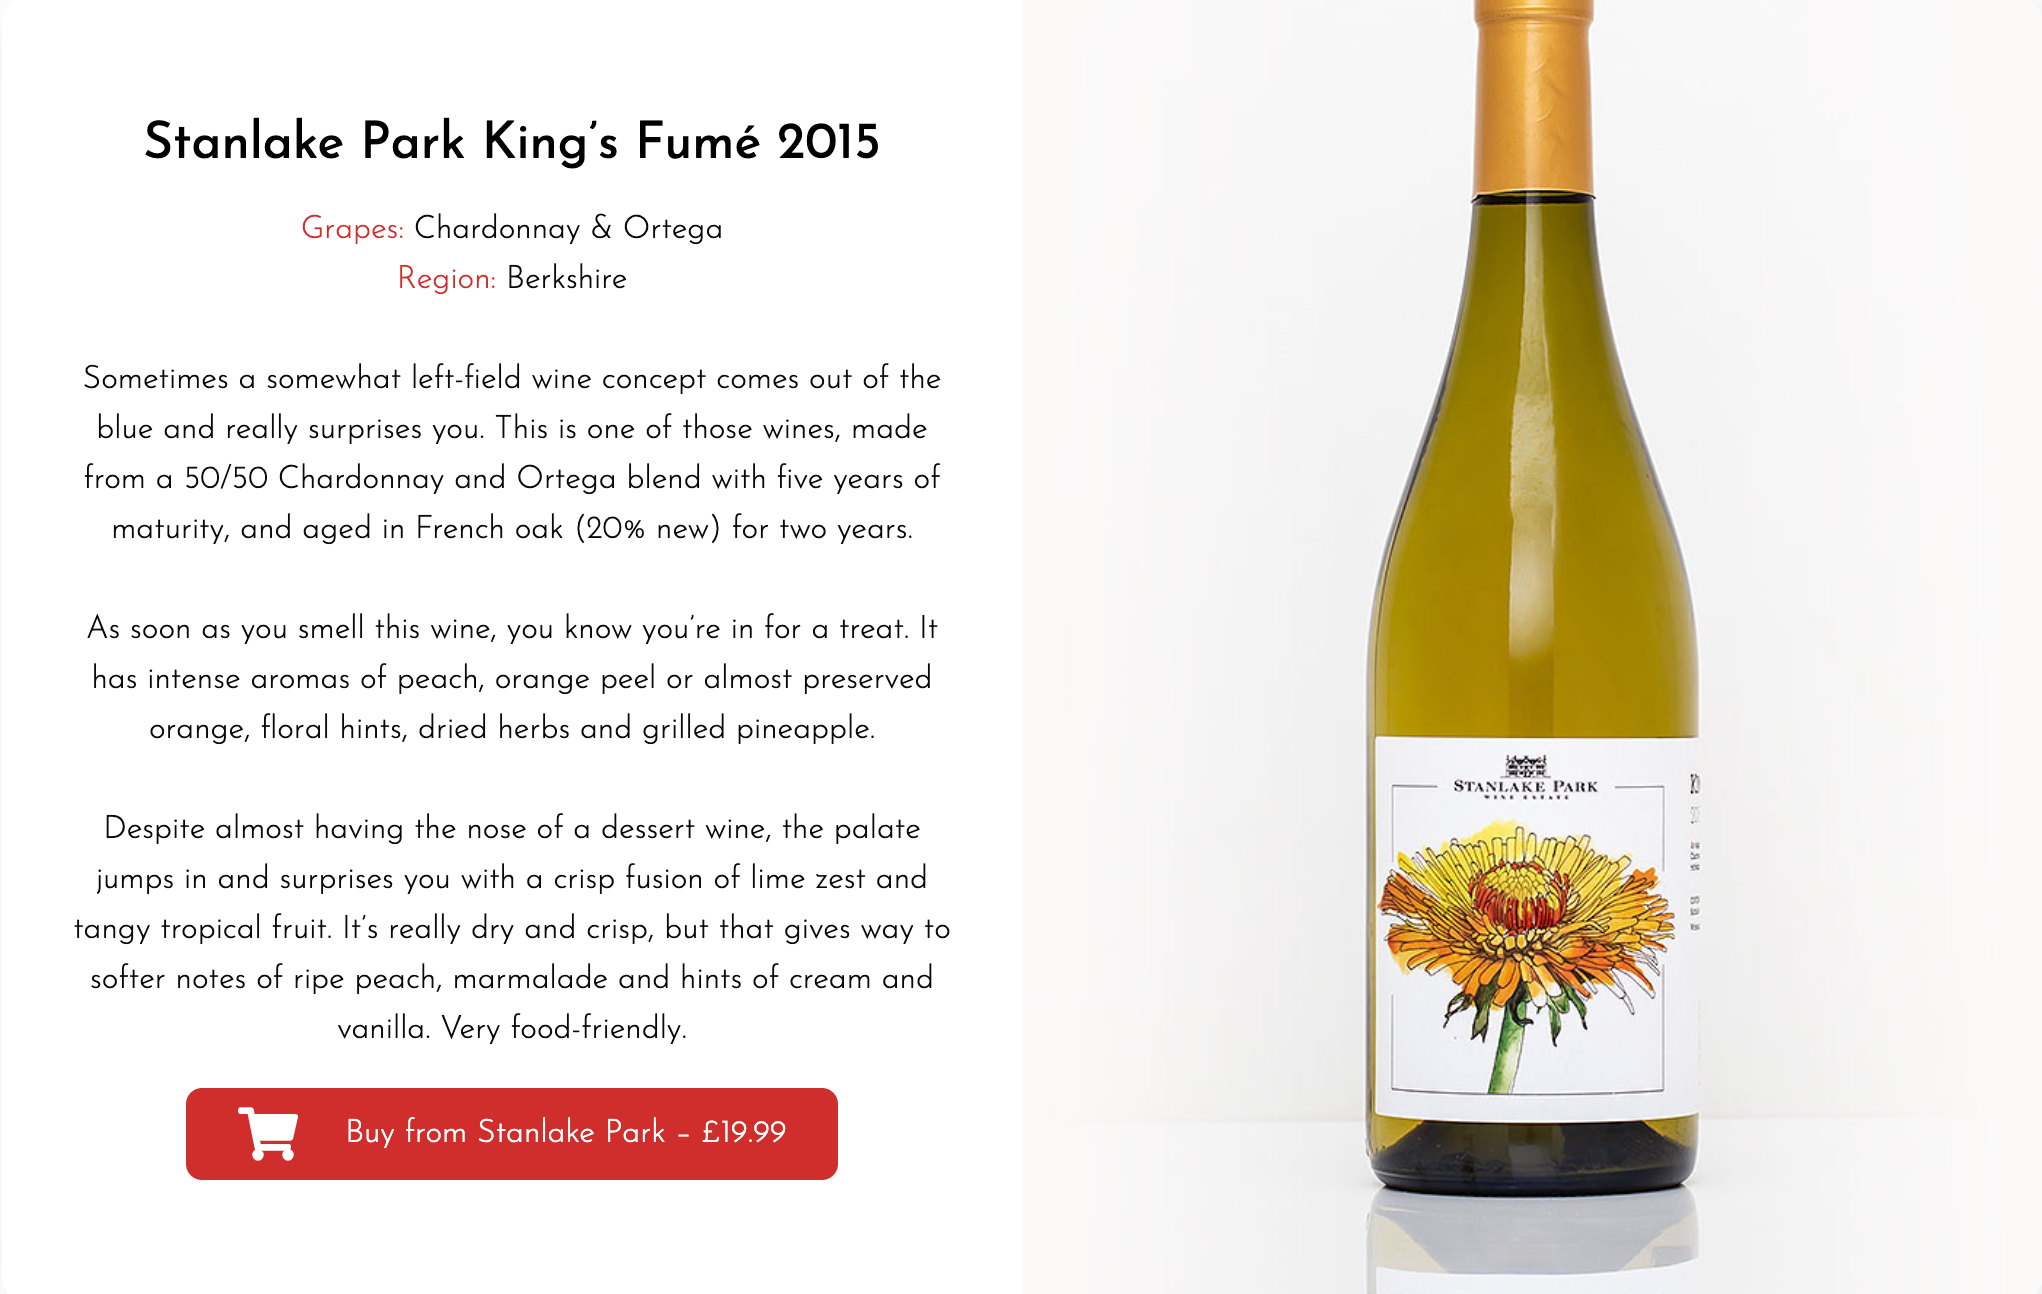 Great British Wine - King's Fumé - Stanlake Park Wine Estate